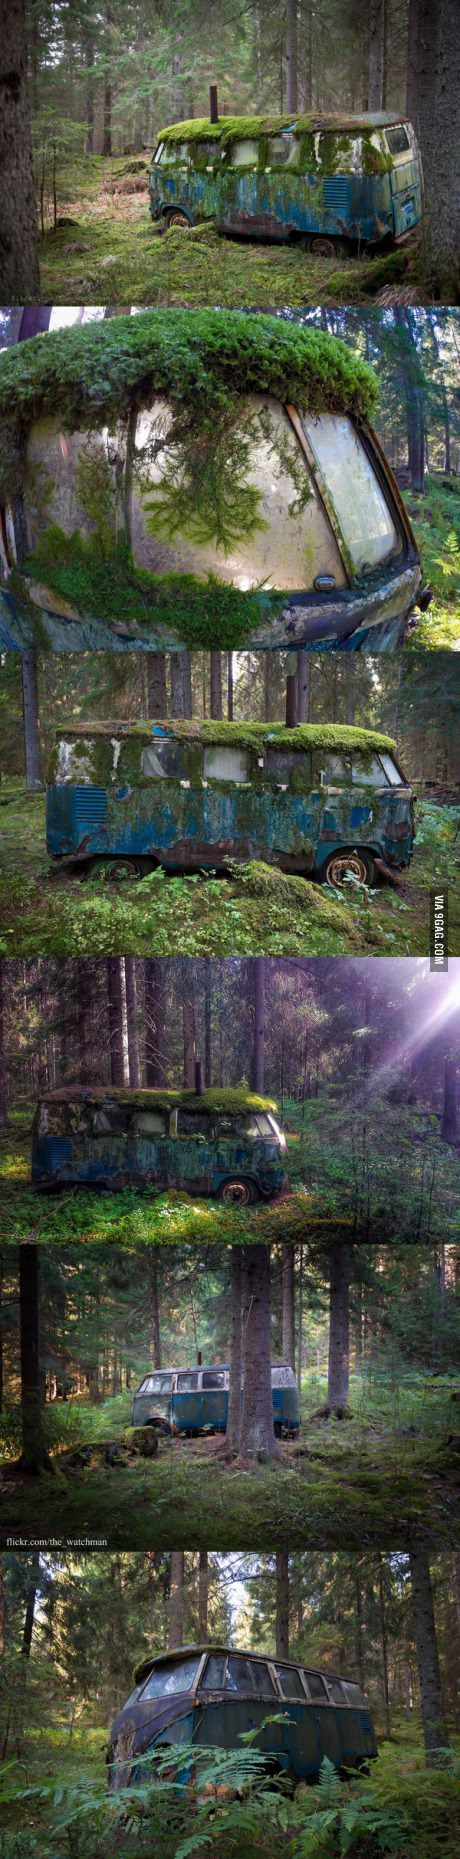 Abandoned VW bus that was once someone's home, deep in the forests of Norway.